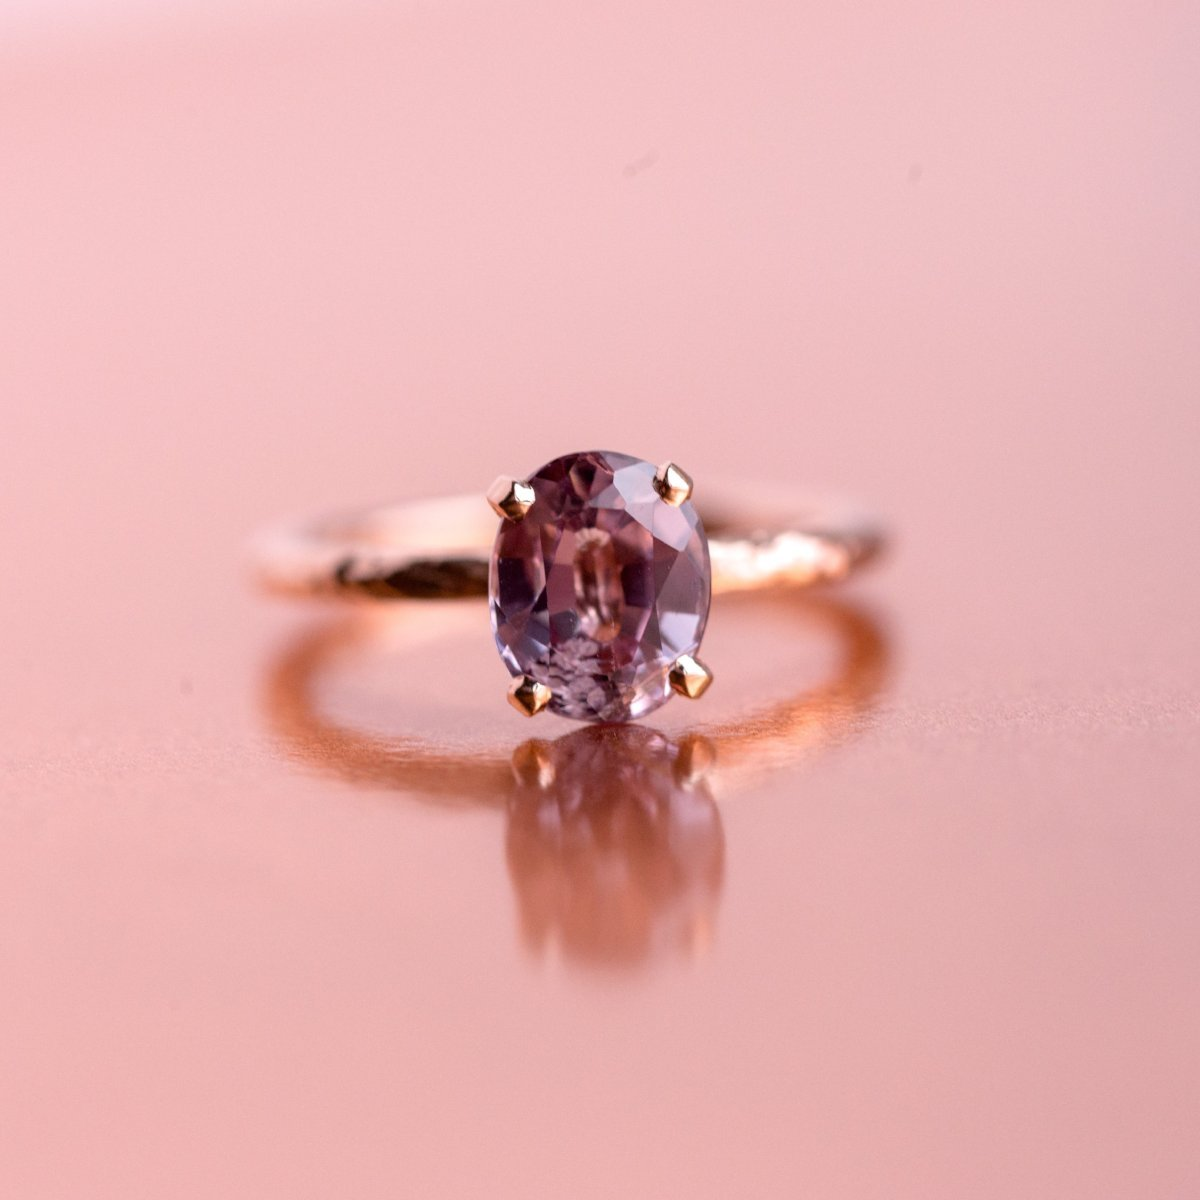 2.33ct Oval Pink Spinel Rose Gold Ring - Hand Carved 4-prong ...